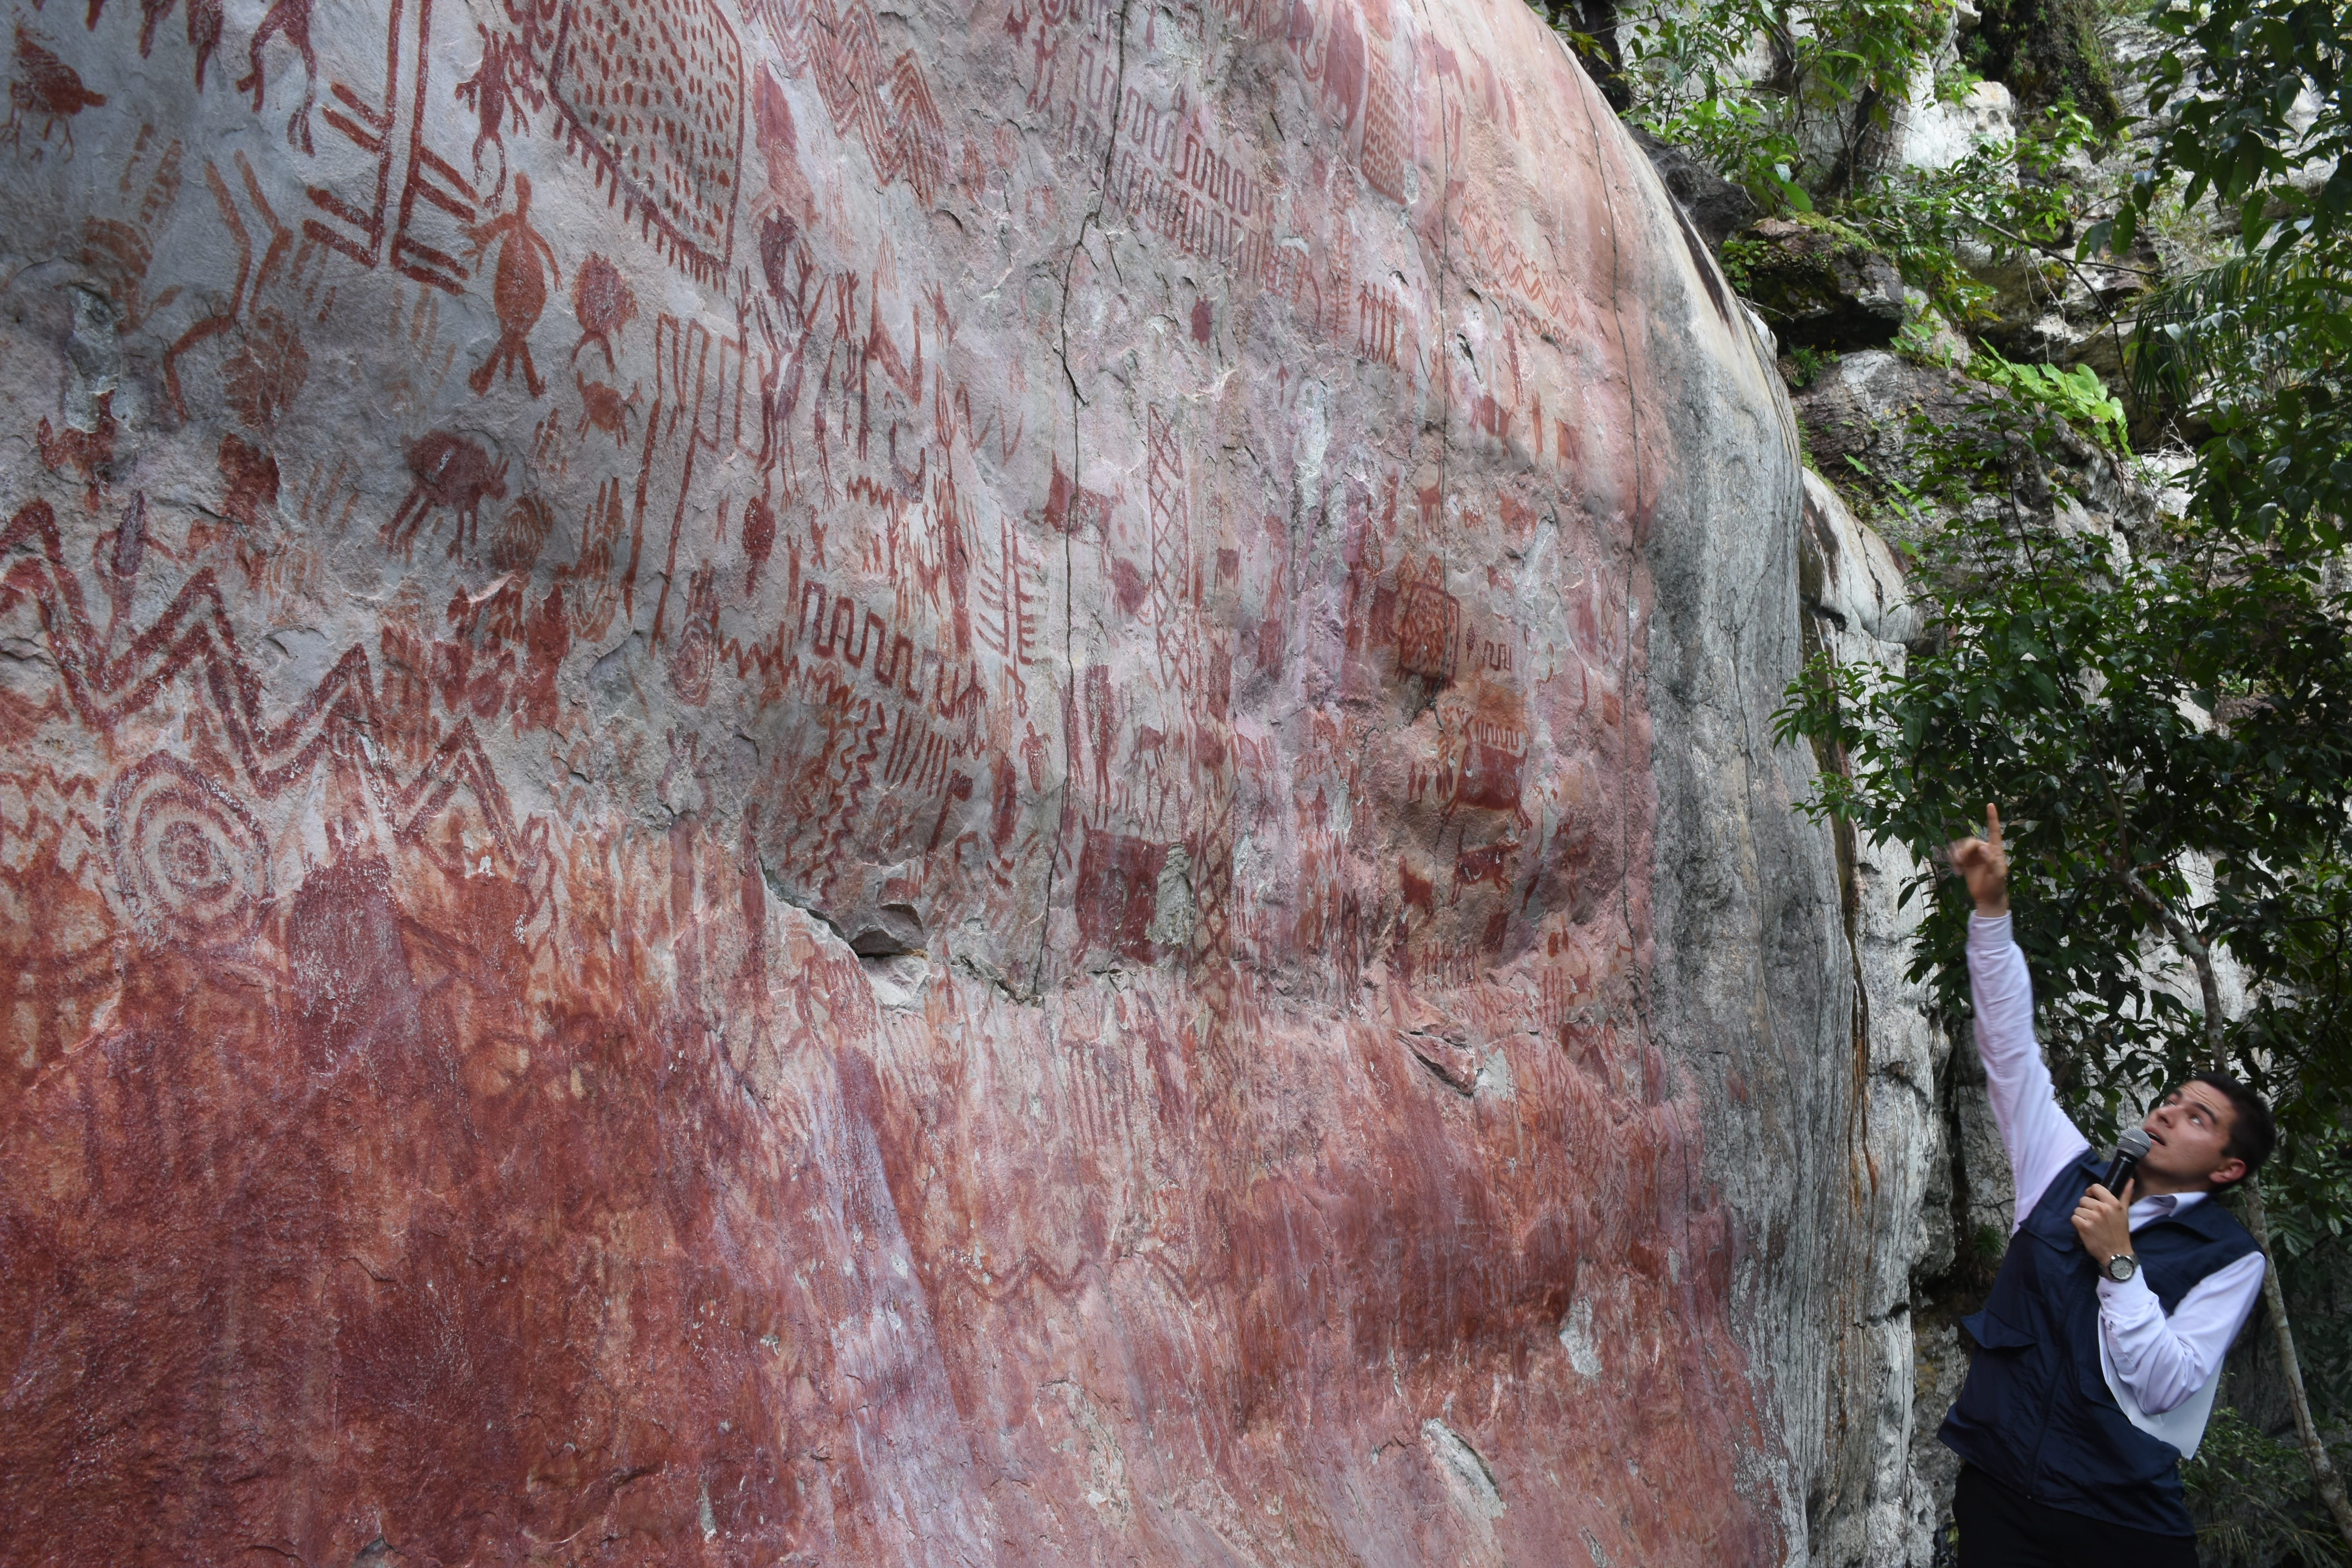 Prehistoric Rock Art Depicting Now-Extinct Animals Discovered in Colombia